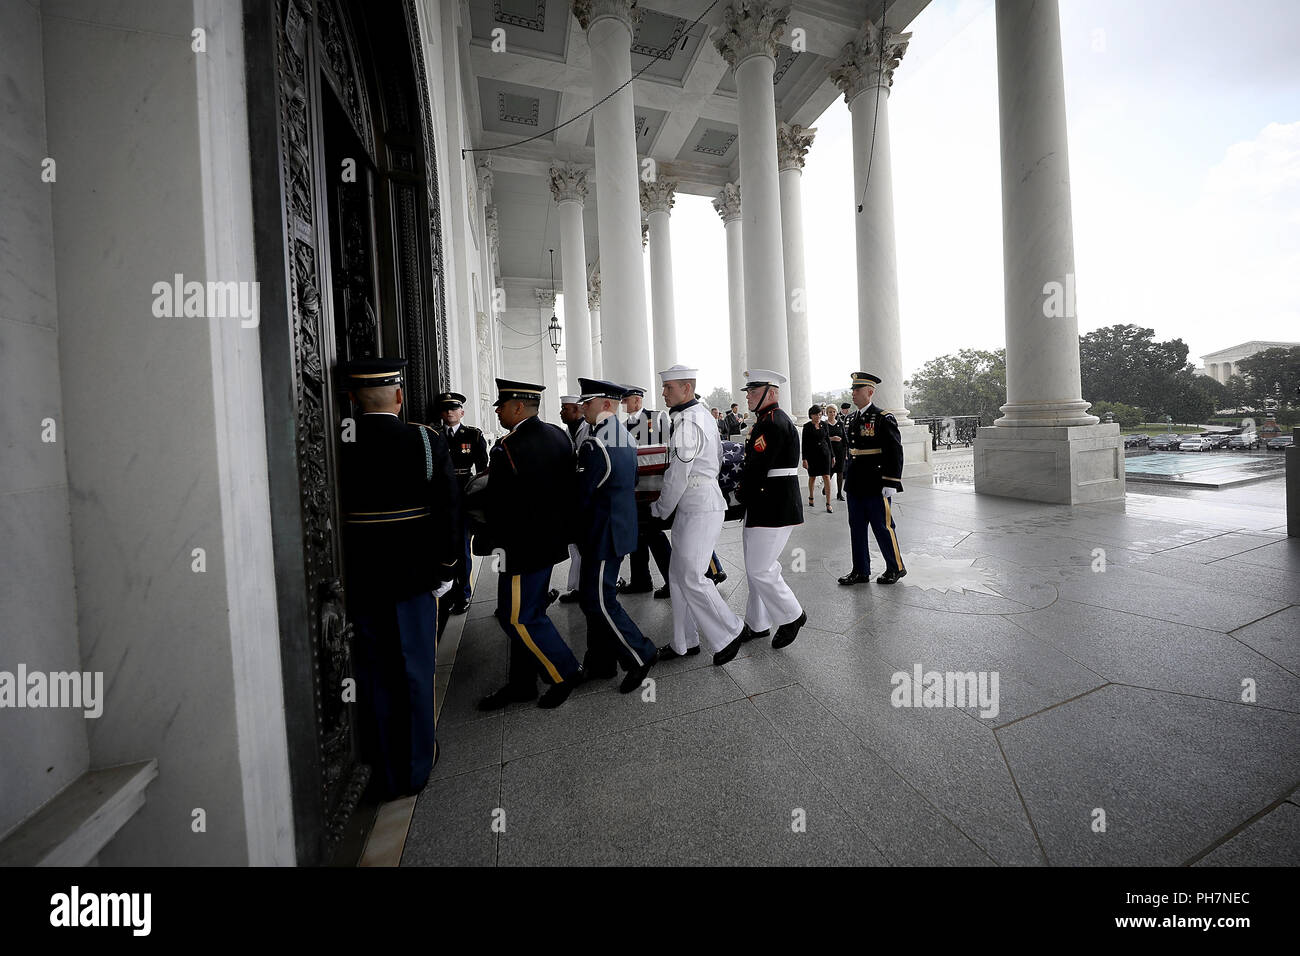 GETTY POOLWASHINGTON, DC - AUGUST 31: A military honor guard team carries the casket of the late-Sen. John McCain (R-AZ) into the U.S. Capitol August 31, 2018 in Washington, DC. The late senator died August 25 at the age of 81 after a long battle with brain cancer. He will lie in state at the U.S. Capitol today, a rare honor bestowed on only 31 people in the past 166 years. Sen. McCain will be buried at his final resting place at the U.S. Naval Academy on Sunday. (Photo by Win McNamee/Getty Images) | usage worldwide - Stock Image